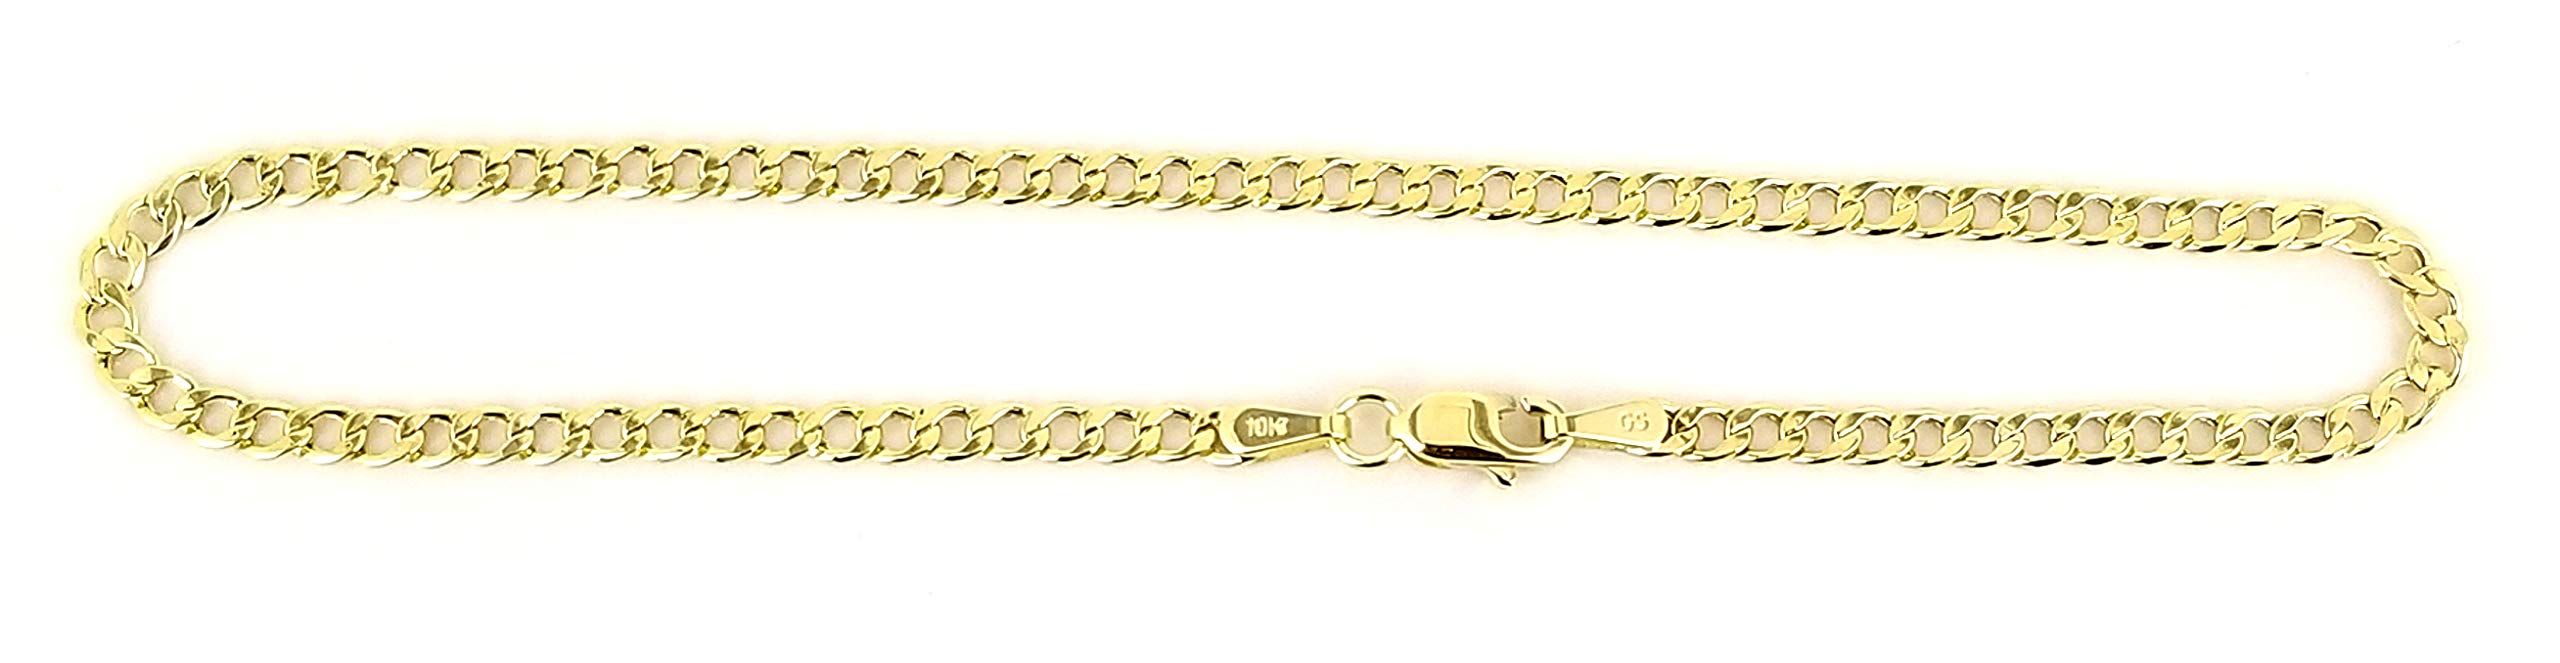 Real 10k Yellow Gold Hollow Cuban Men and Women Bracelet/Anklet 2.5 mm (10)